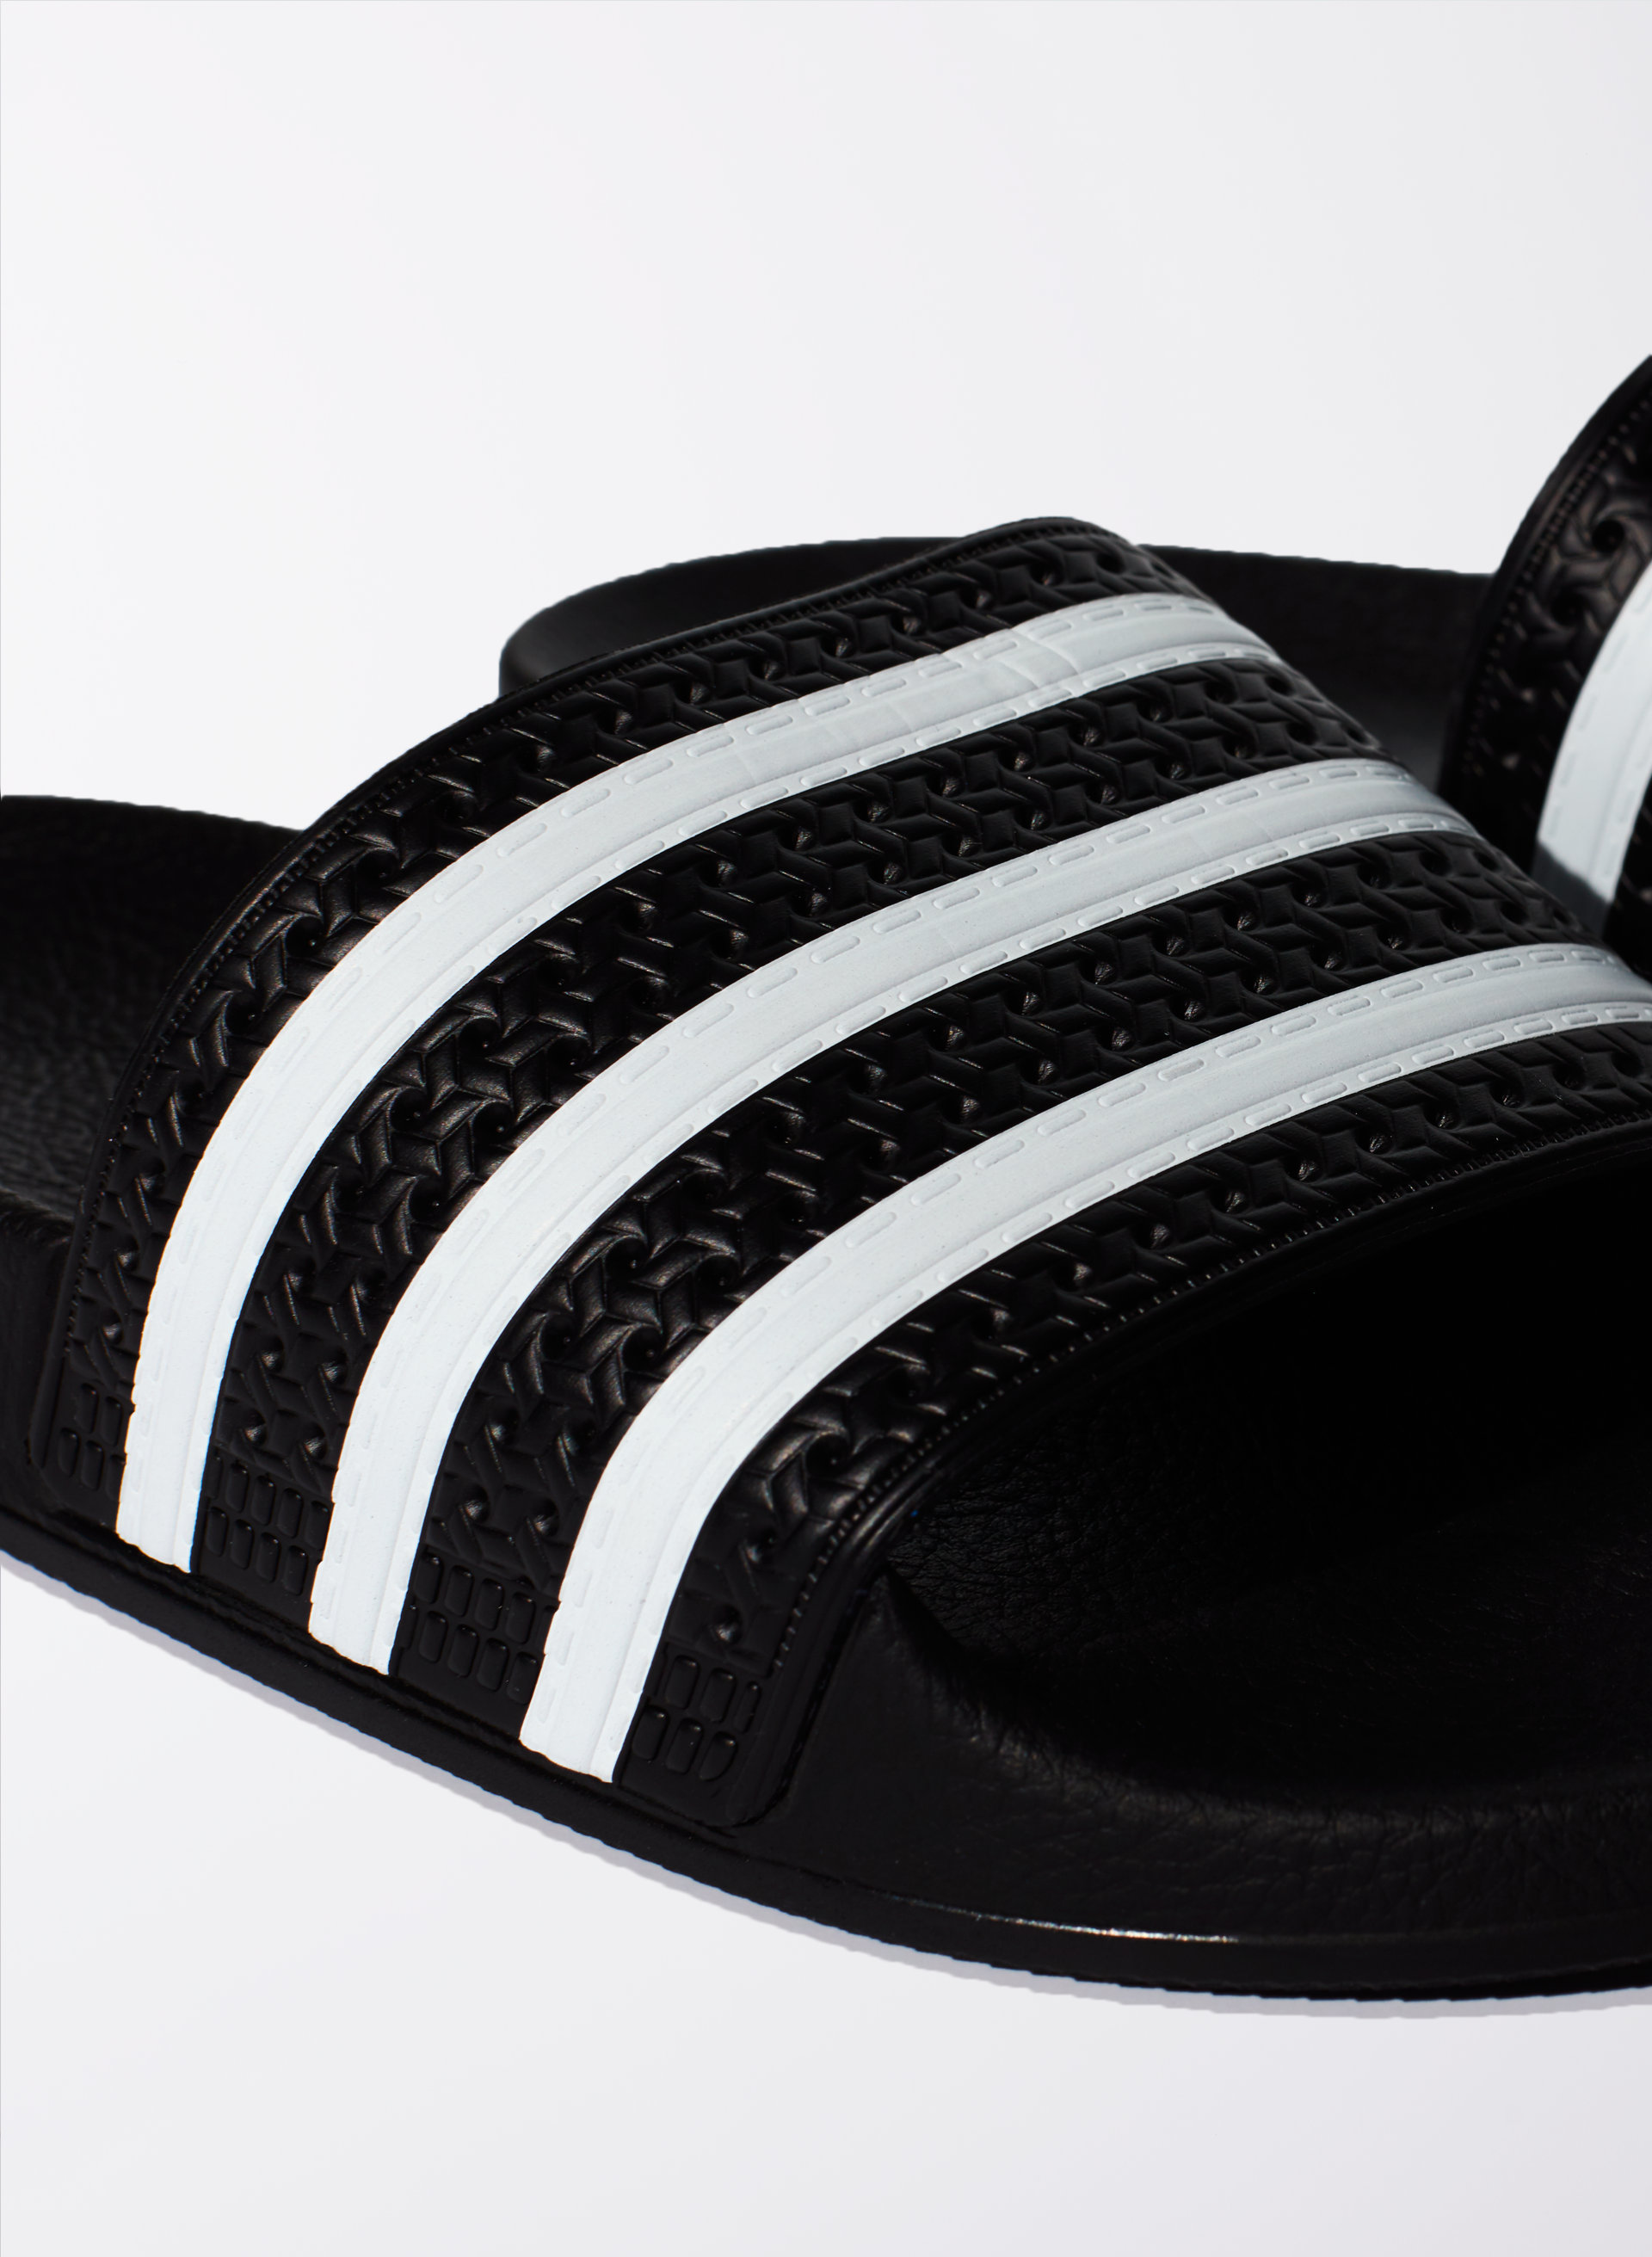 1b2b554888c7 Buy adidas adilette pool slides   OFF72% Discounted